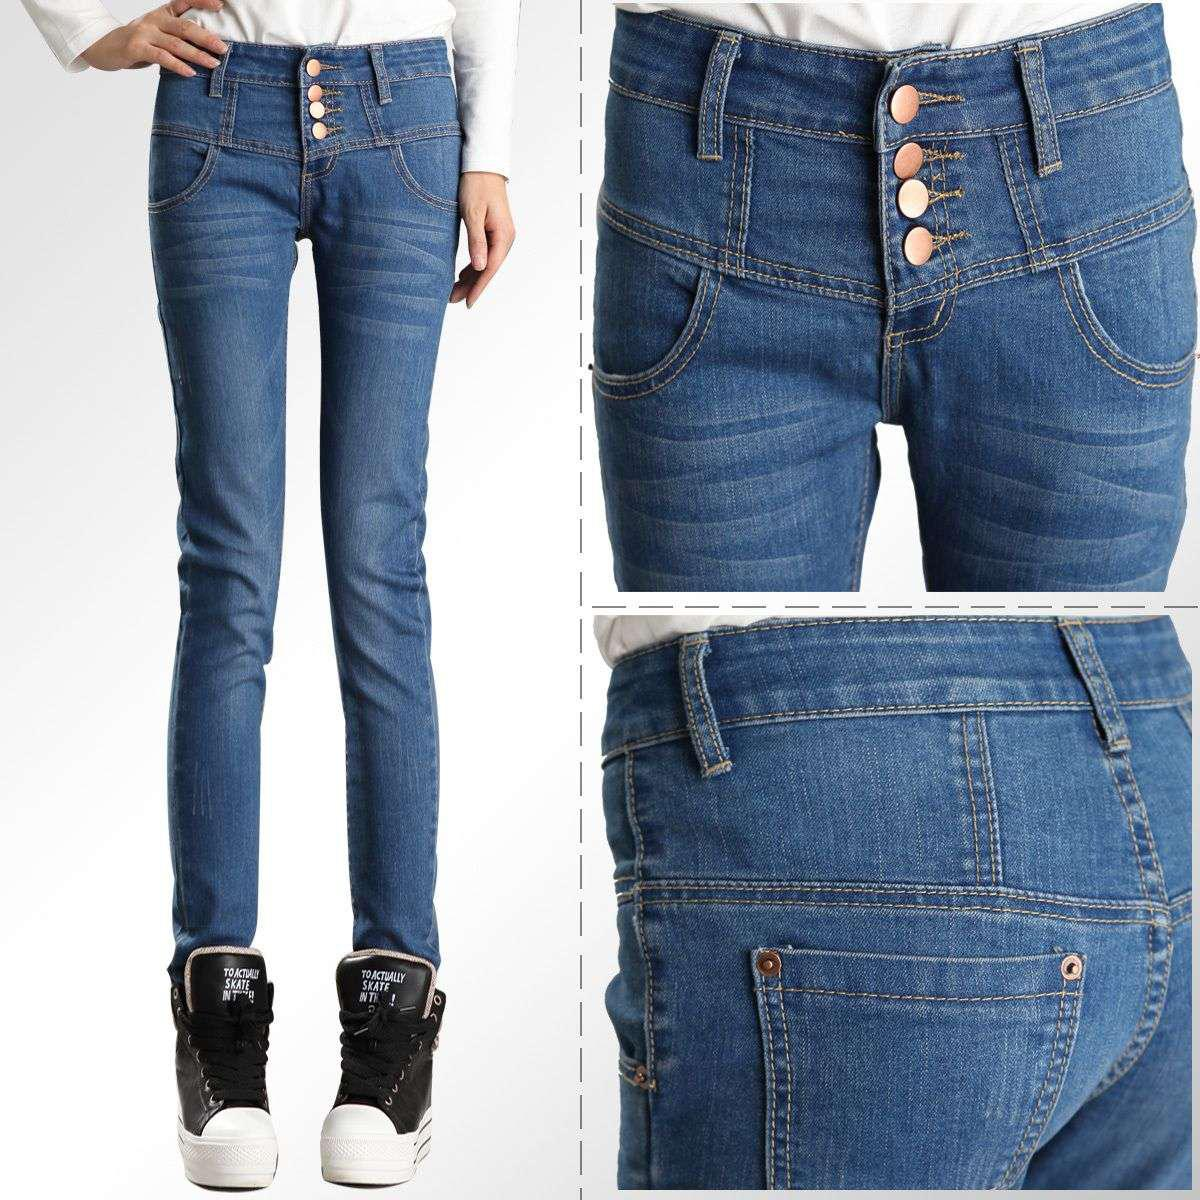 Plus Size Jeans Size 26 - Jeans Am